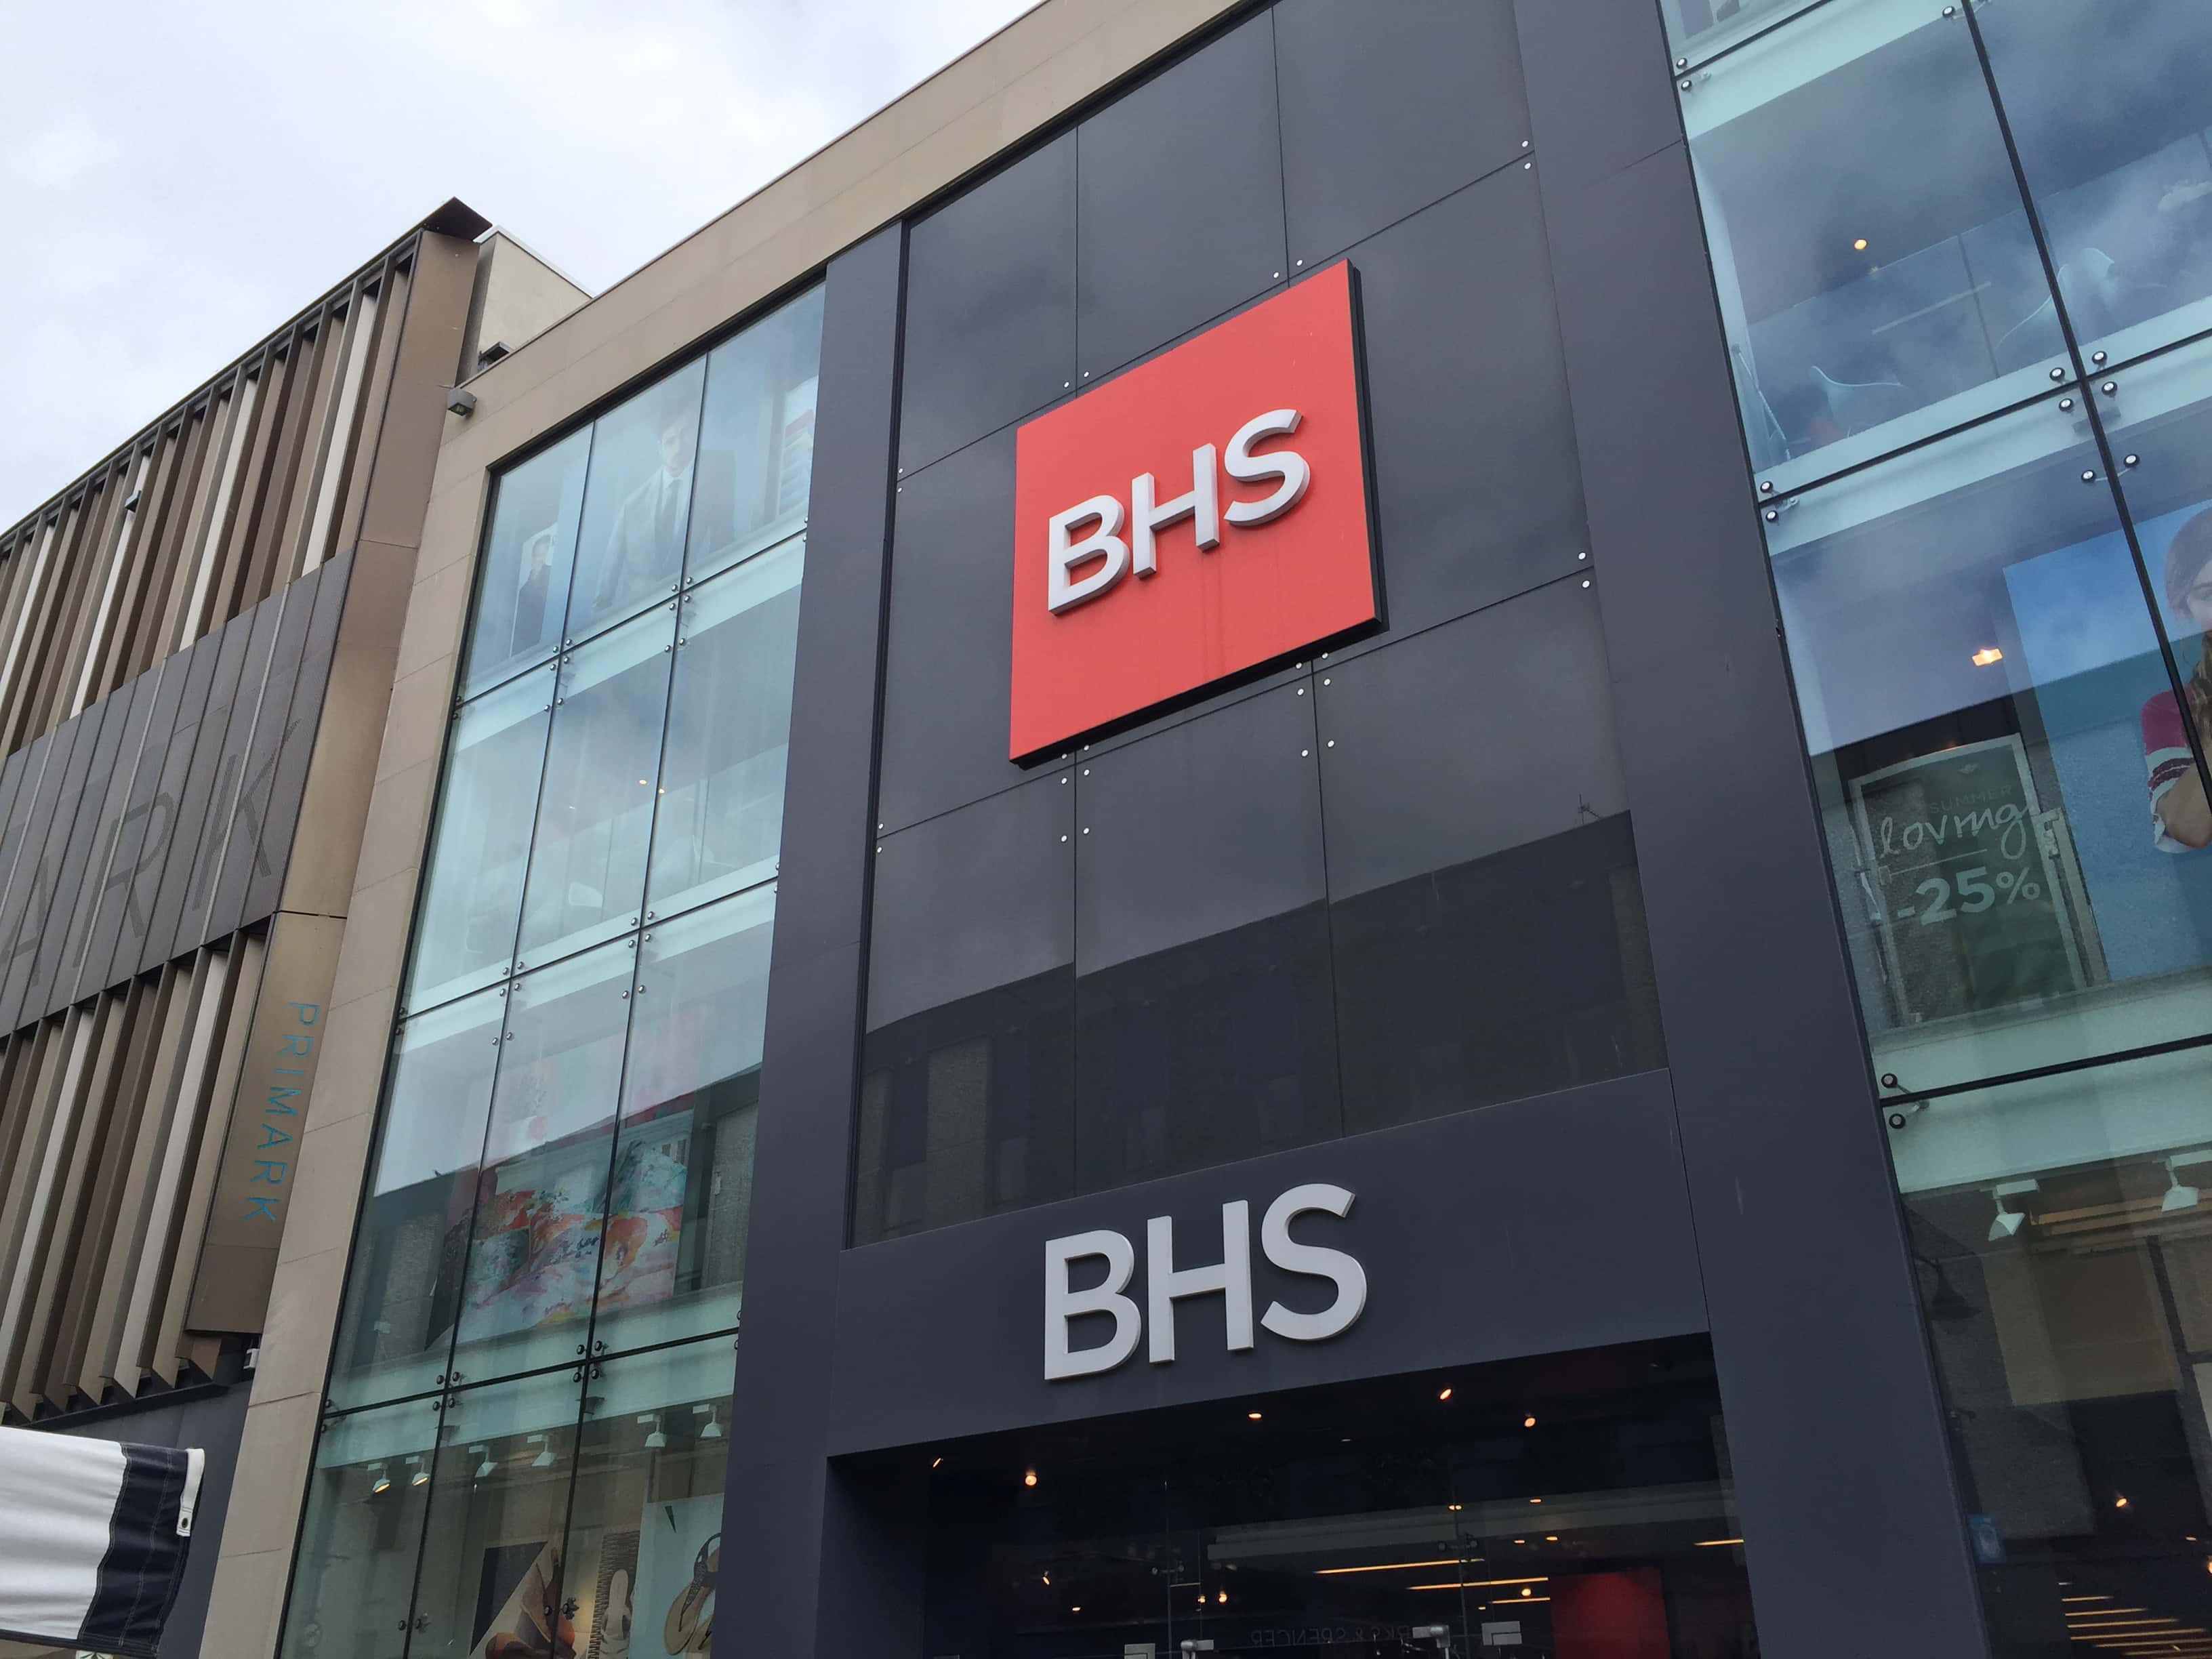 BHS stores across the north East will close. Picture by: Tom White / PA Wire/Press Association Images.